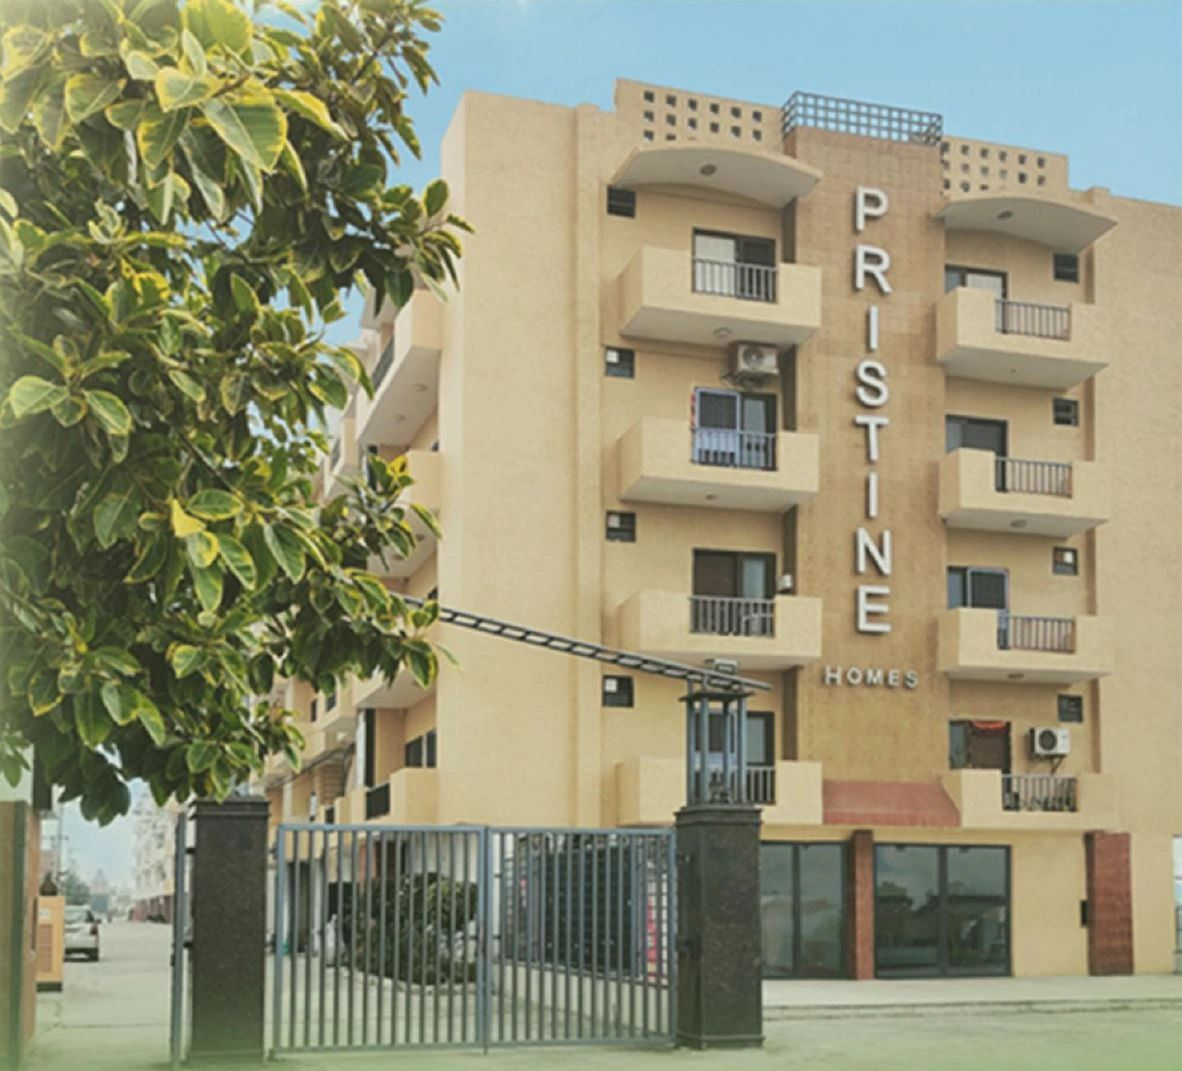 2 3 bhk flats apartments rudrapur ready to move in semi furnished affordable housing pristine homes